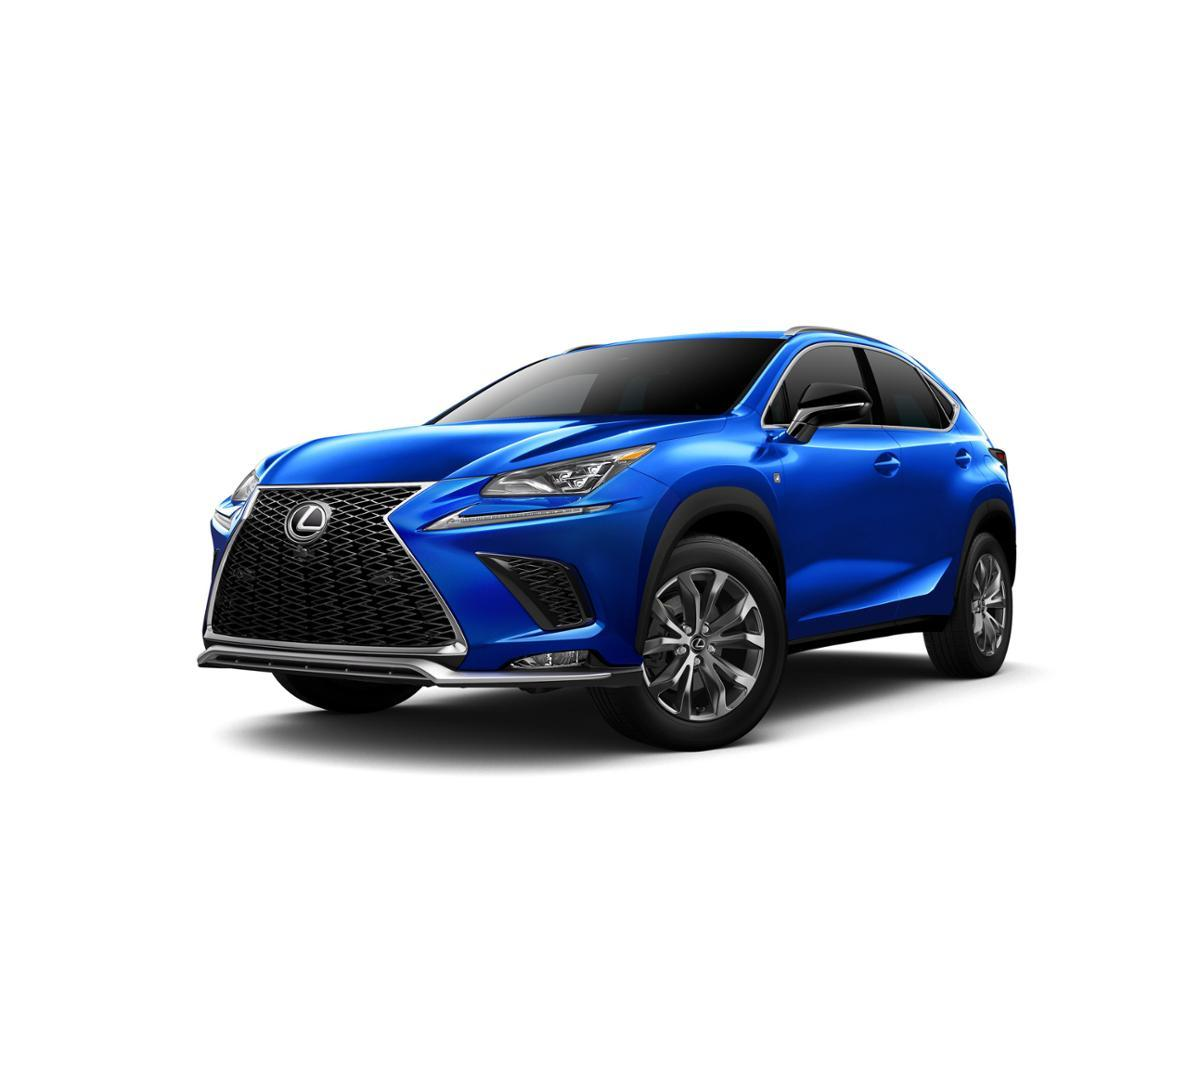 New 2018 Lexus NX 300 (Ultrasonic Blue Mica) for Sale in Houston, Pearland & League City, TX